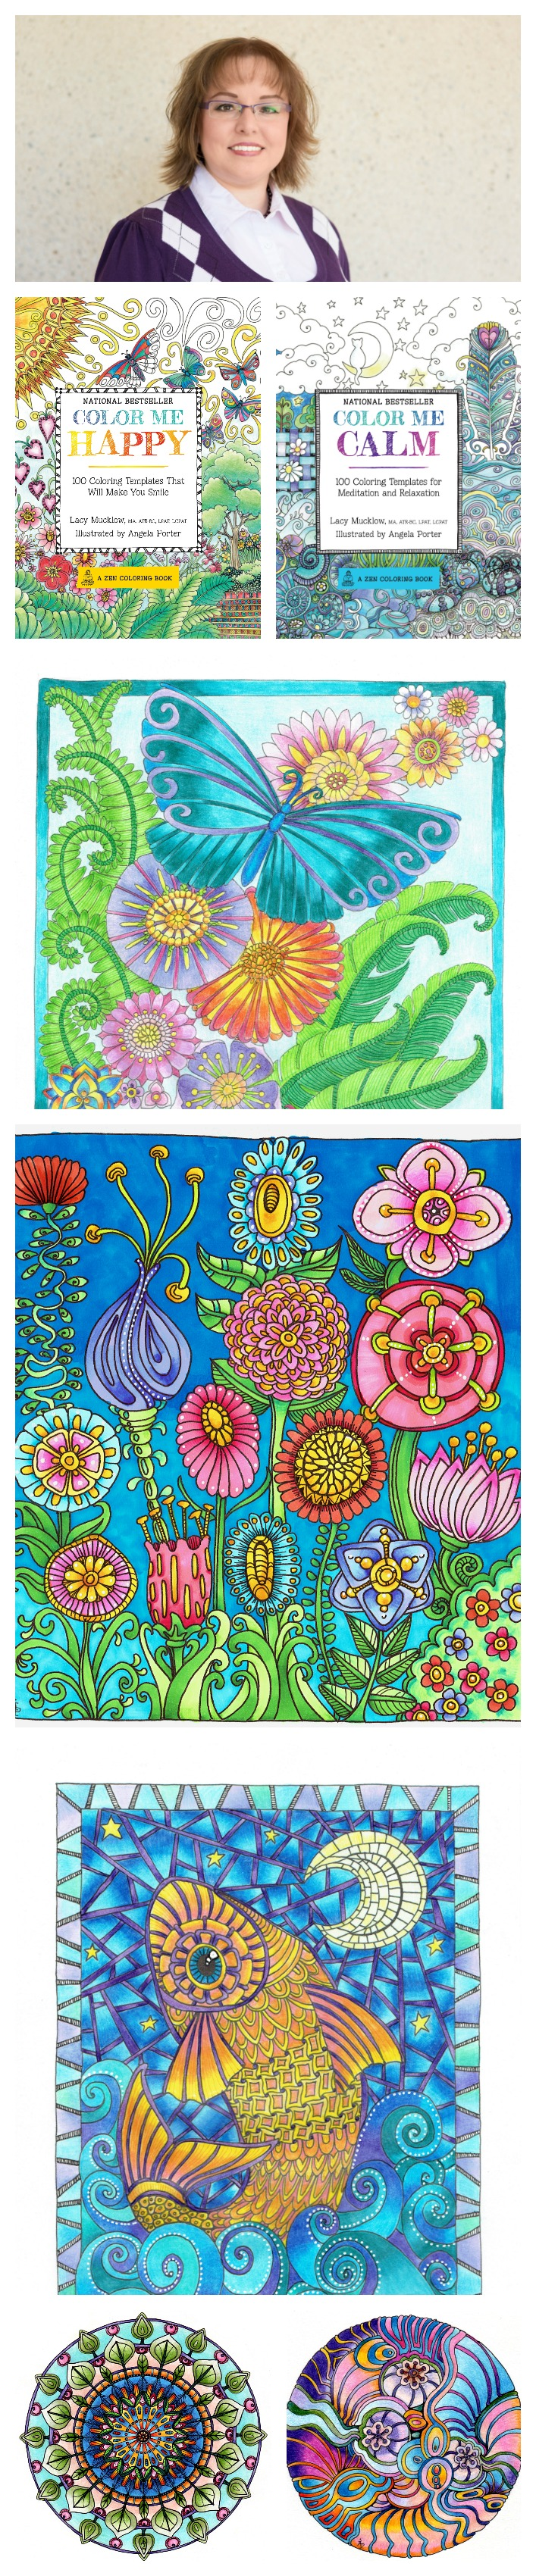 Colouring for adults benefits - Adult Coloring Book Author And Art Therapist Lacy Mucklow Talks To Us About The Benefits Of